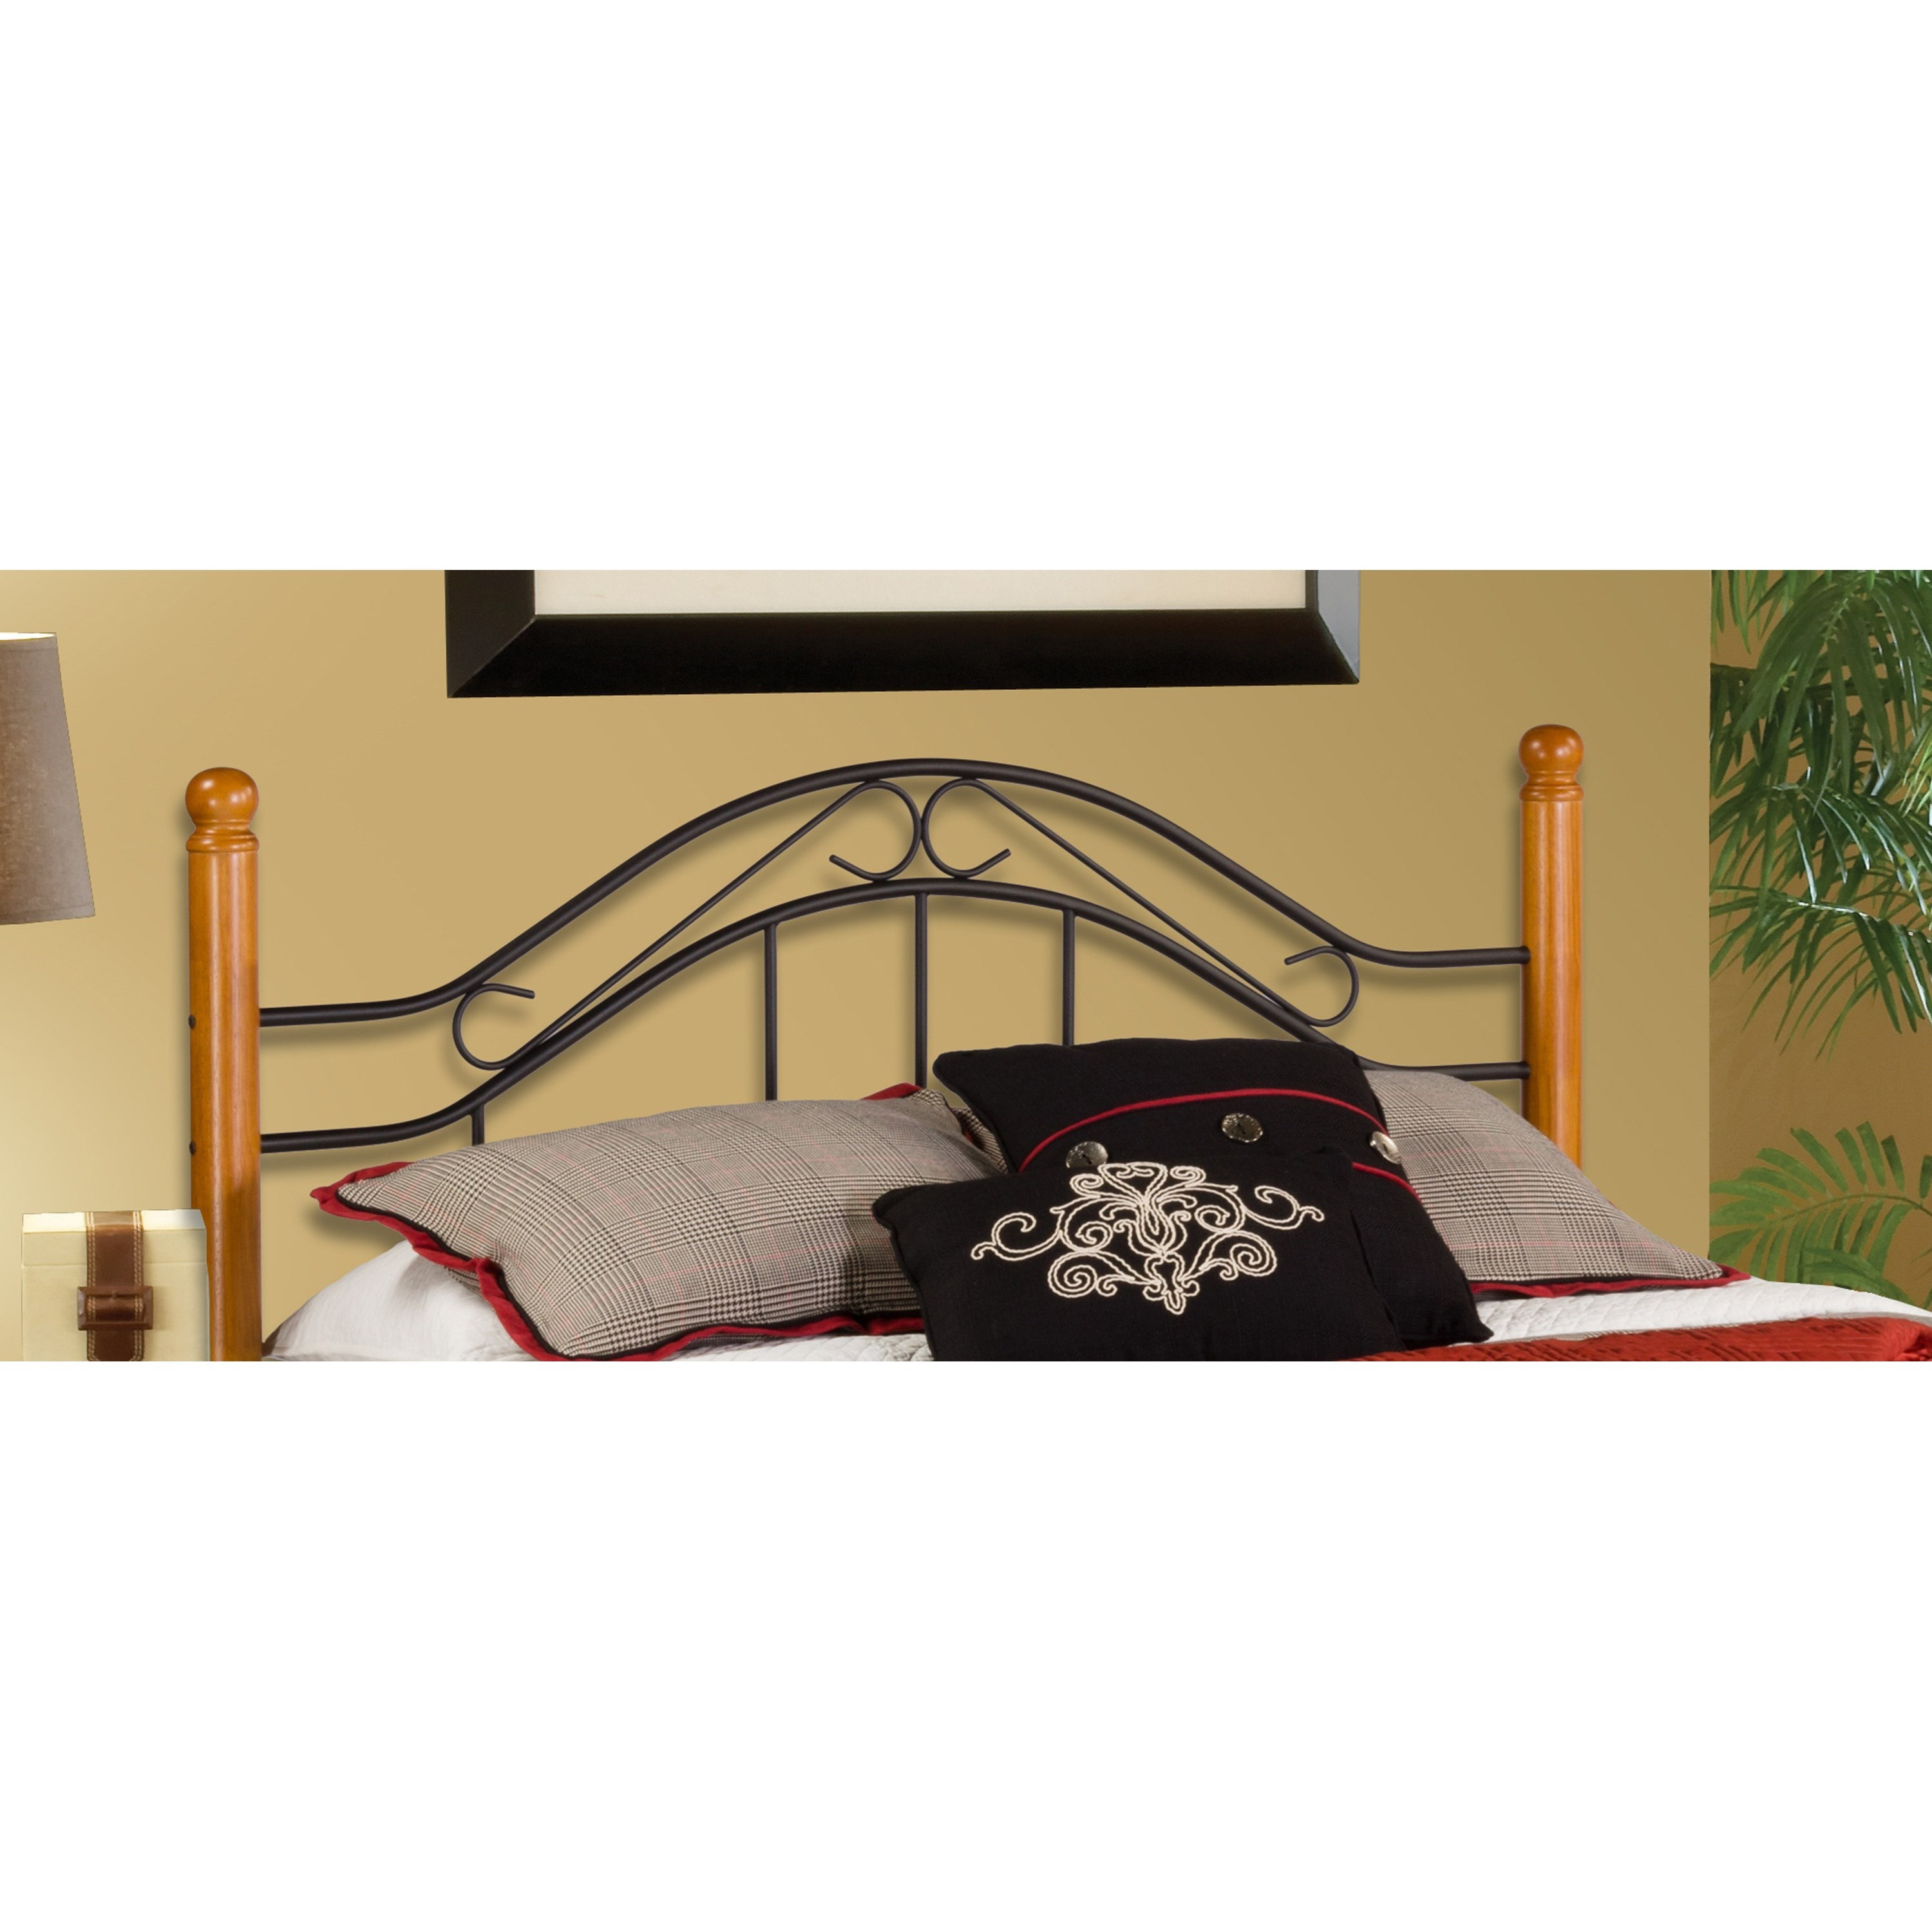 Hillsdale Wood Beds Full/Queen Headboard - Item Number: 164HFQ